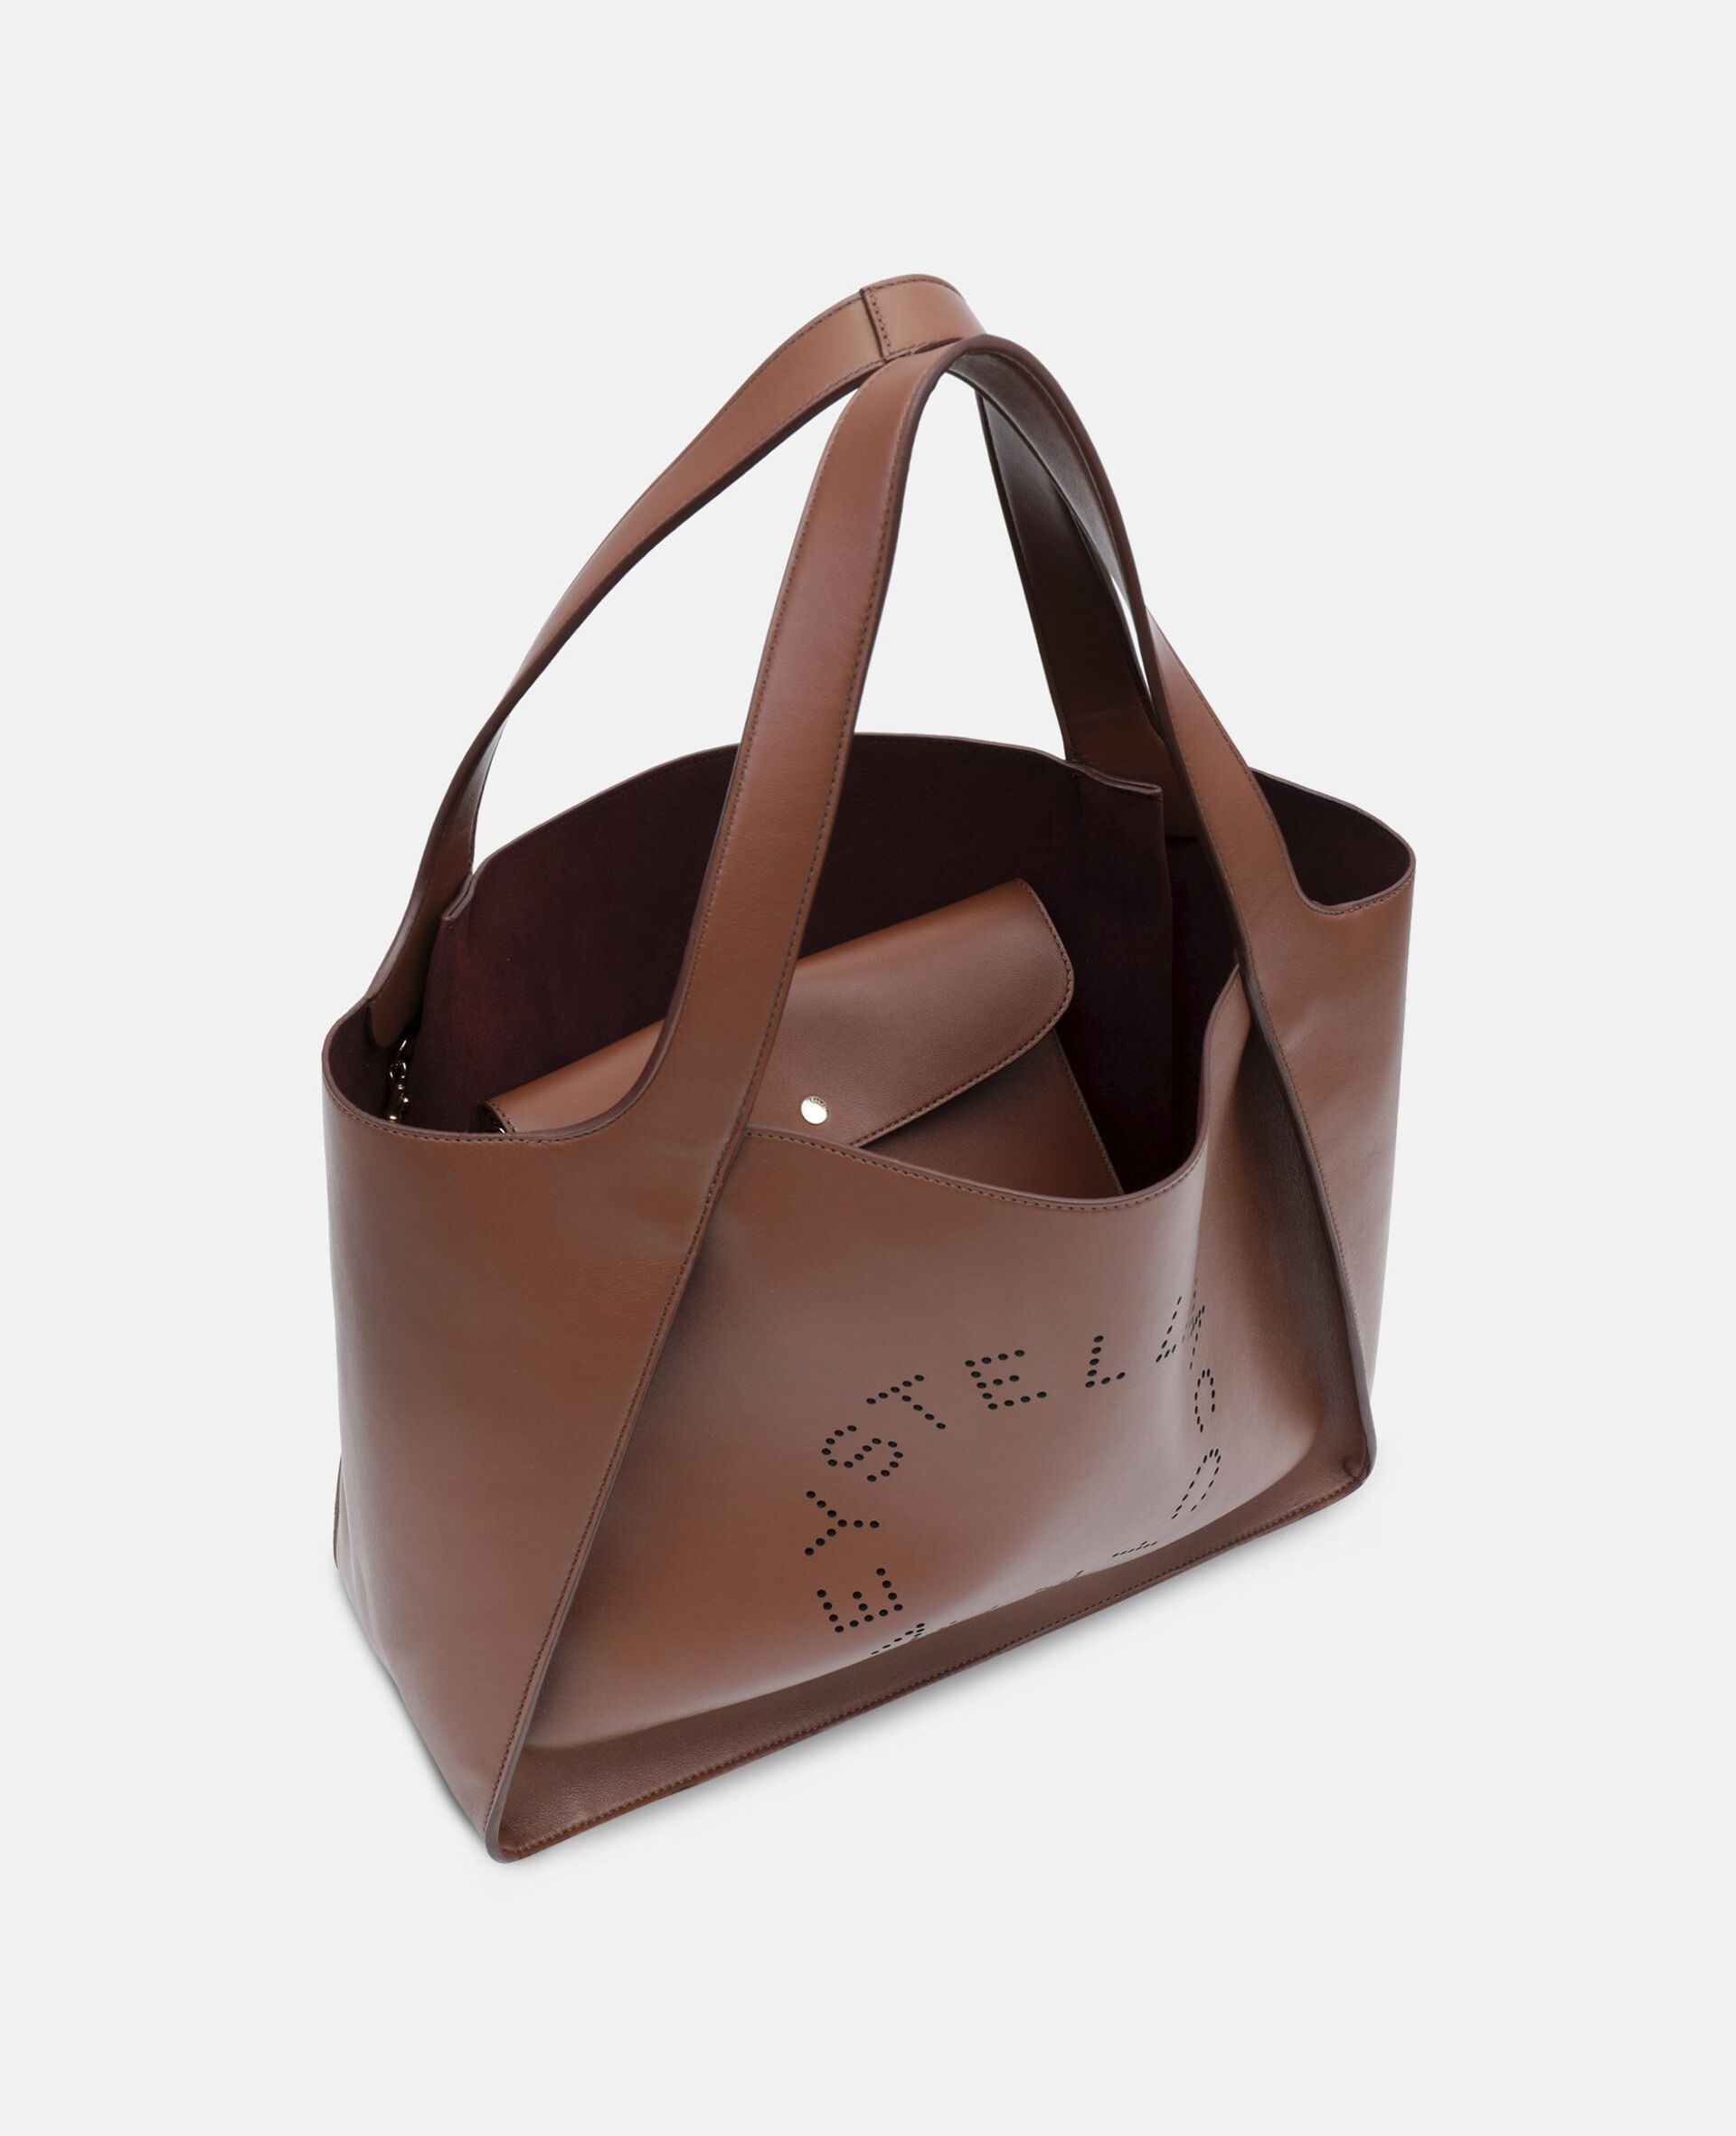 Stella Logo Tote Bag-Brown-large image number 2